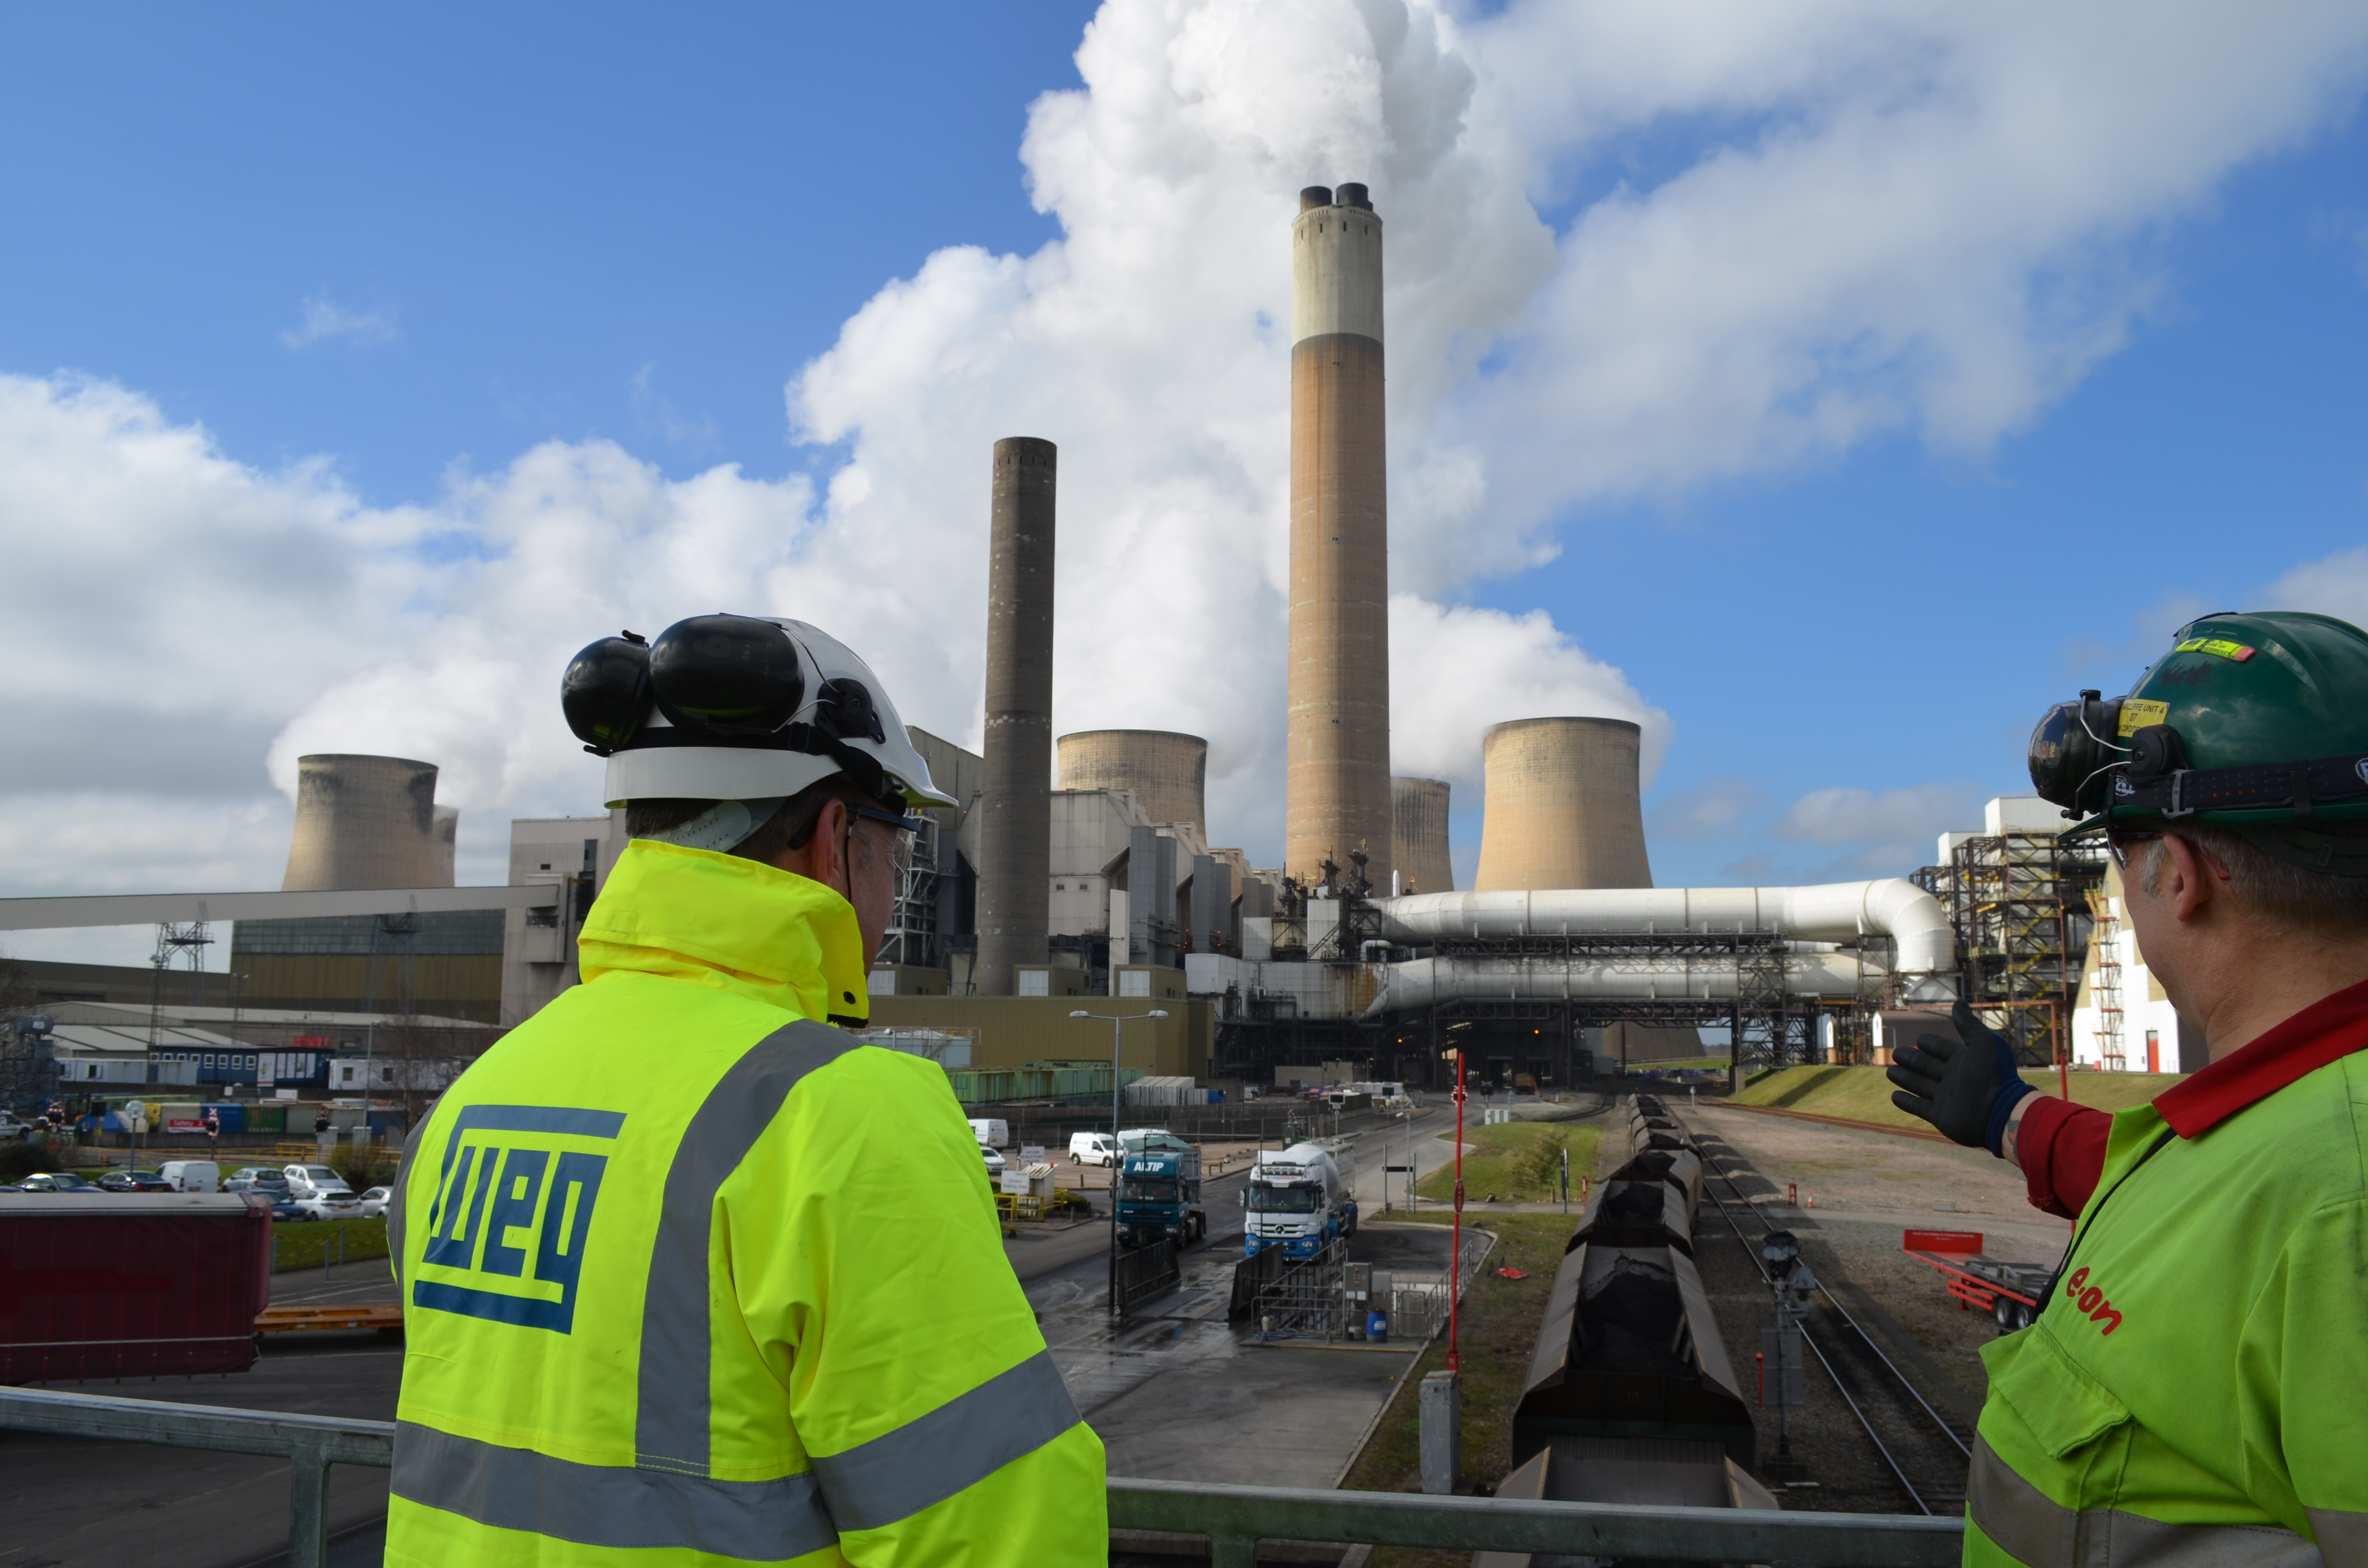 Eight 4.3MW fan motors from WEG drive emission reducing SCR plant at Ratcliffe-on-Soar power station